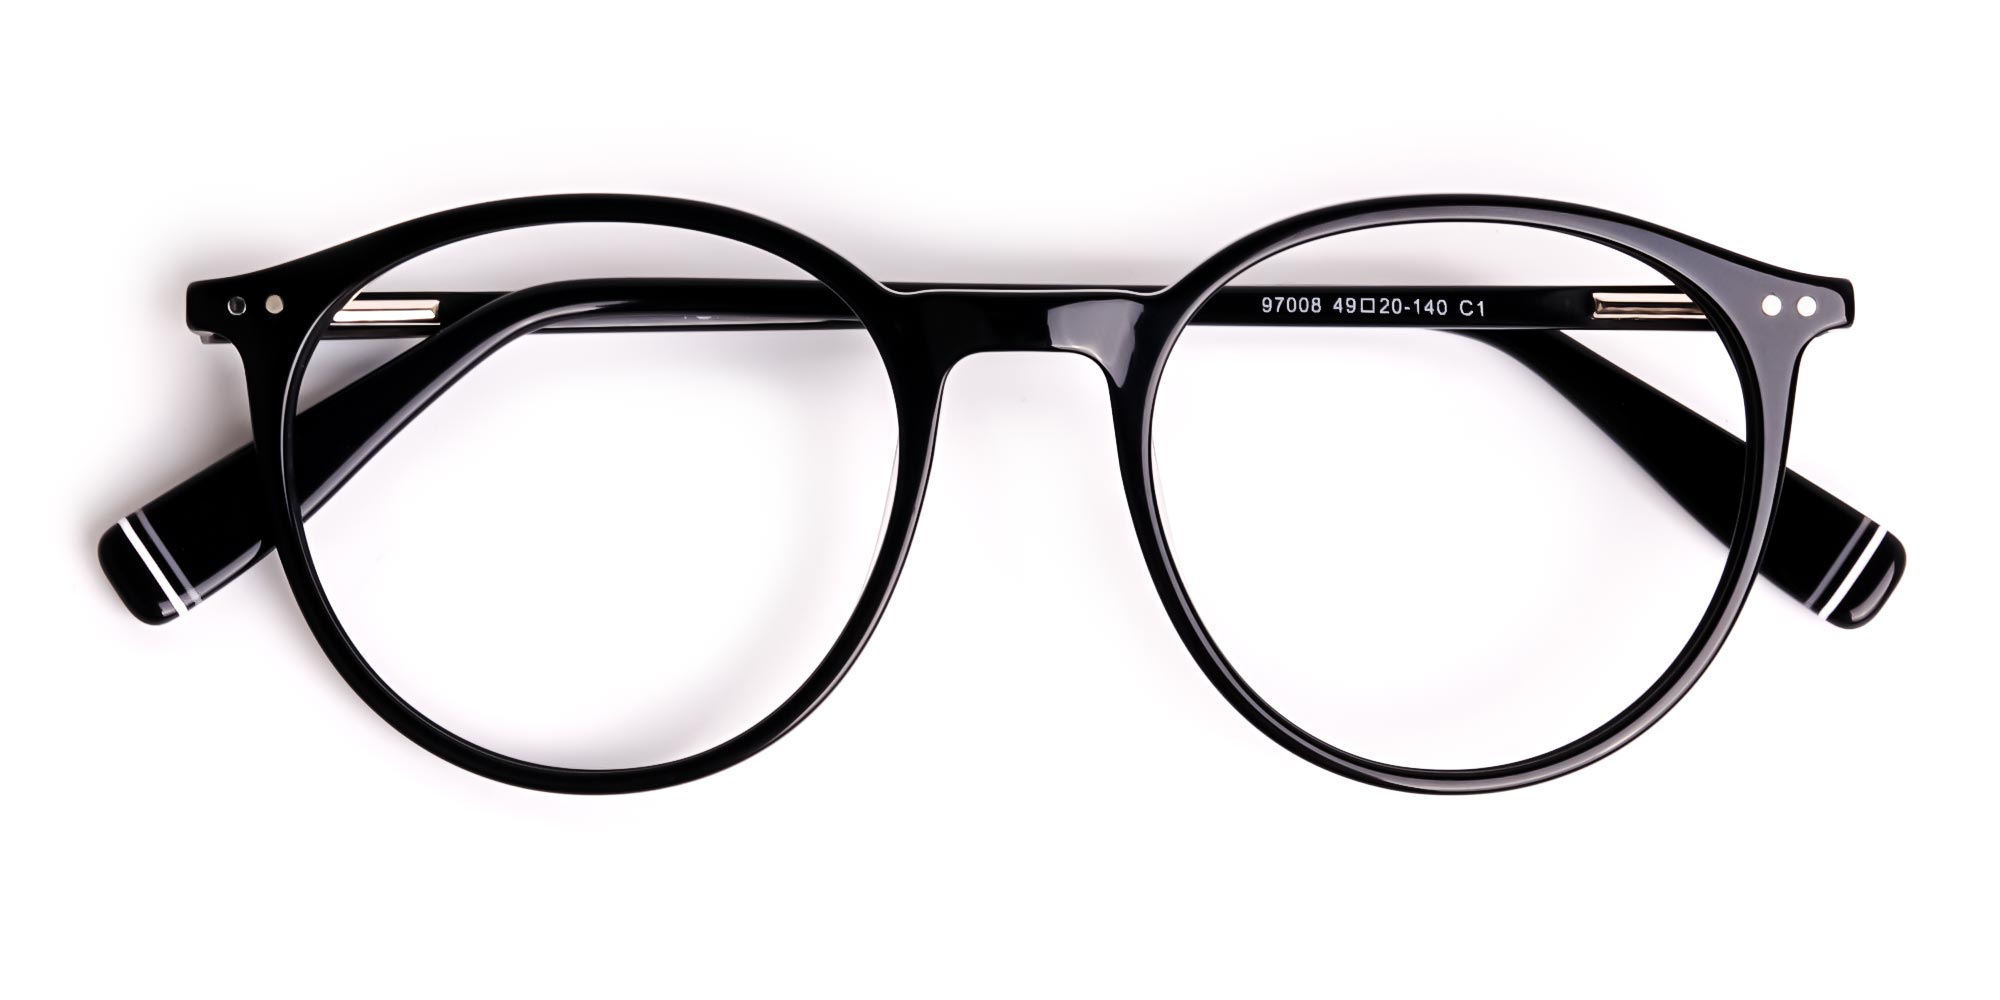 Black Round Spectacles with Silver Detailing Temple